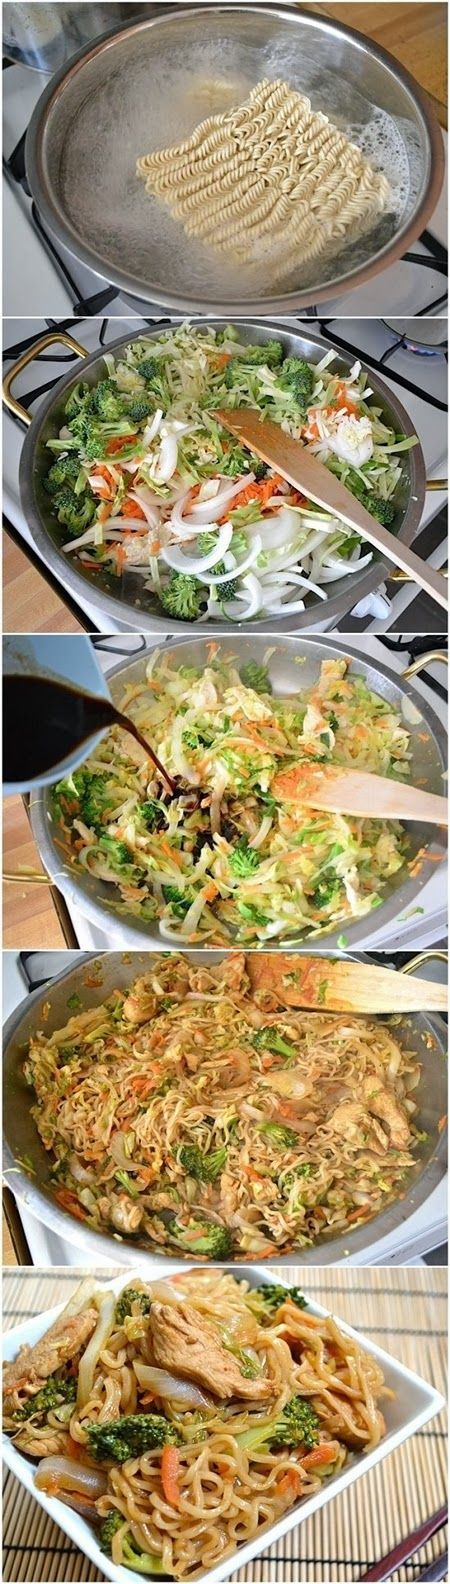 Chicken Yakisoba- made this 4/16 altered the recipe a bit because i wasn't sure it's right with 4 cups of W and 4 cups soy sauce?! Also recommend marinating chicken so it tastes like something.-jh